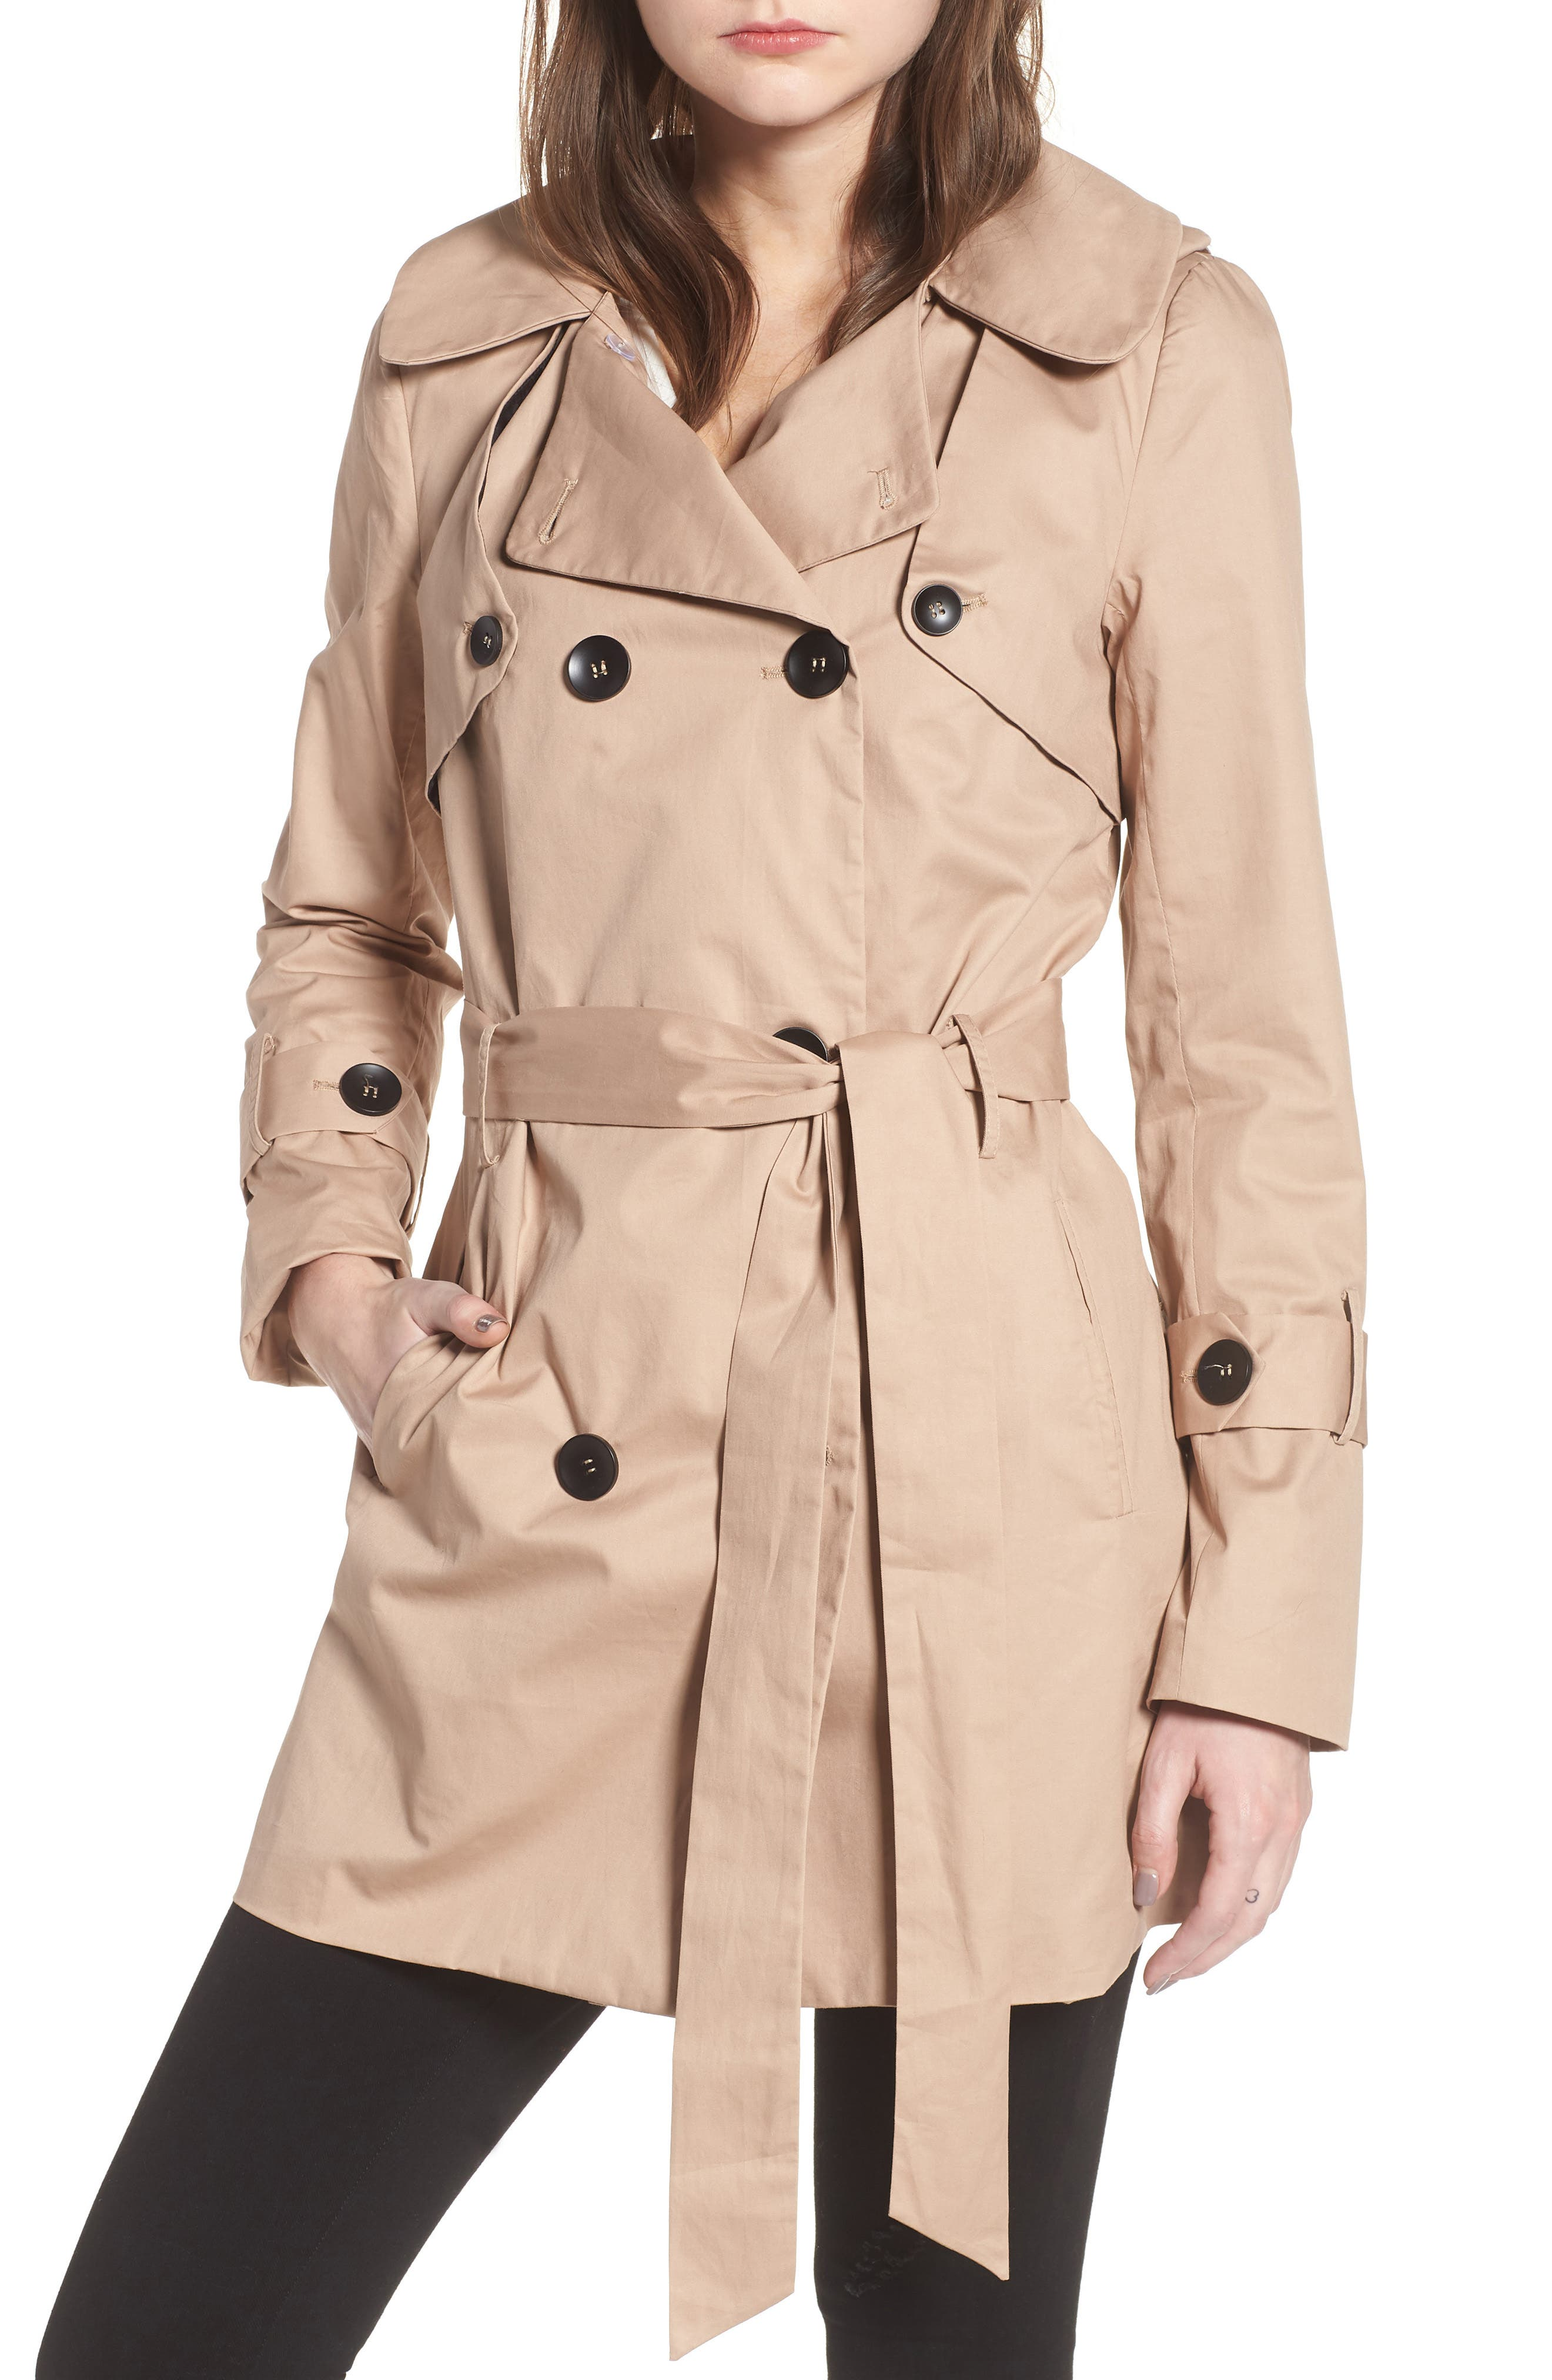 Moss Trench Coat,                             Alternate thumbnail 4, color,                             Sand